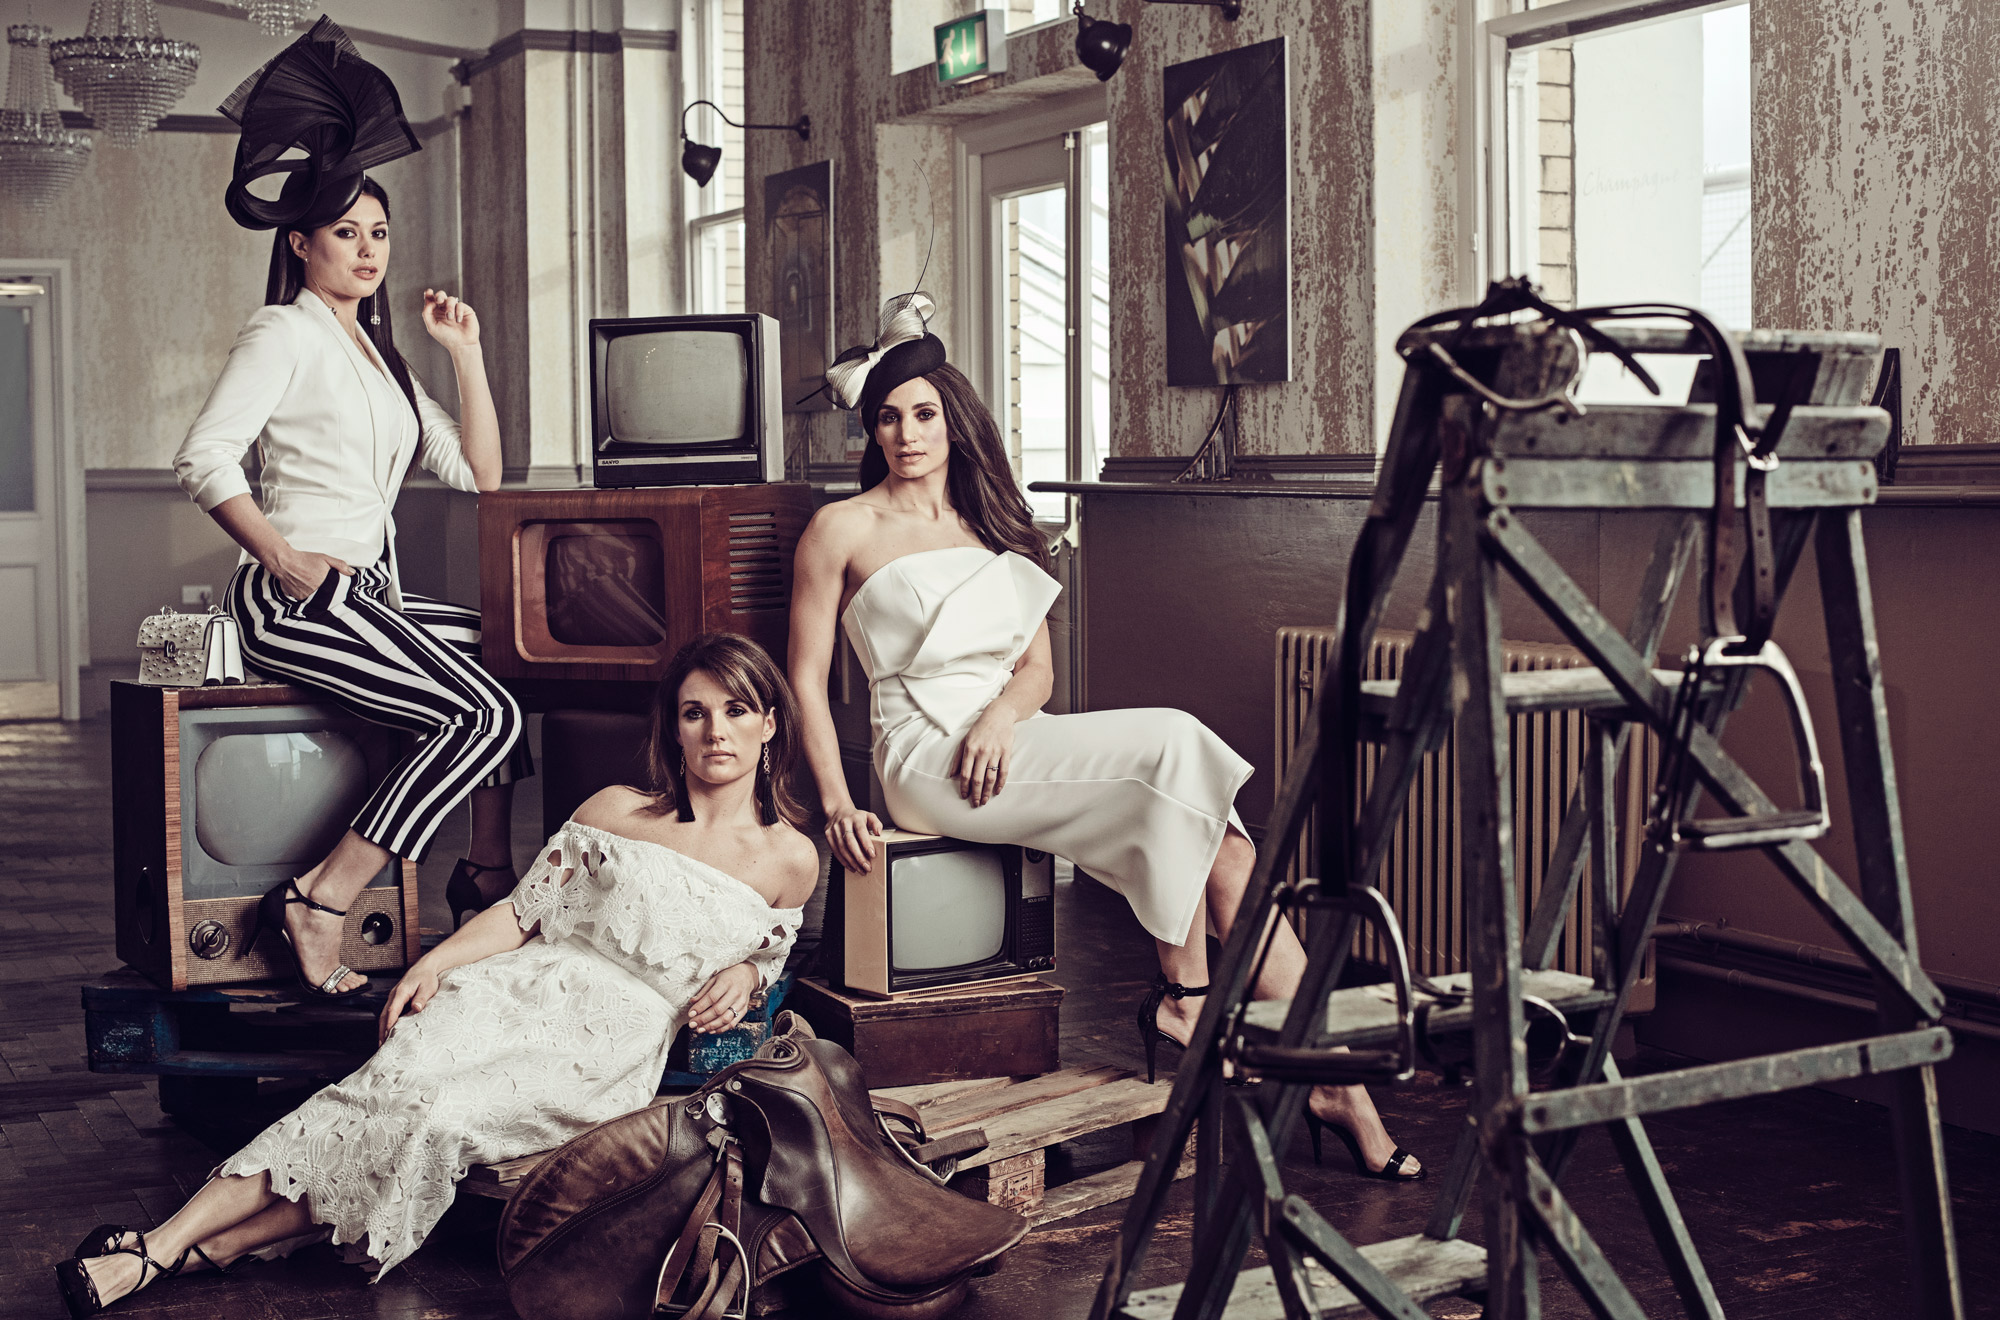 Radox-Grand-national-ambassadors-katie-walsh-Sam-Quek-and-Laura-Wright-header-2000px-wide